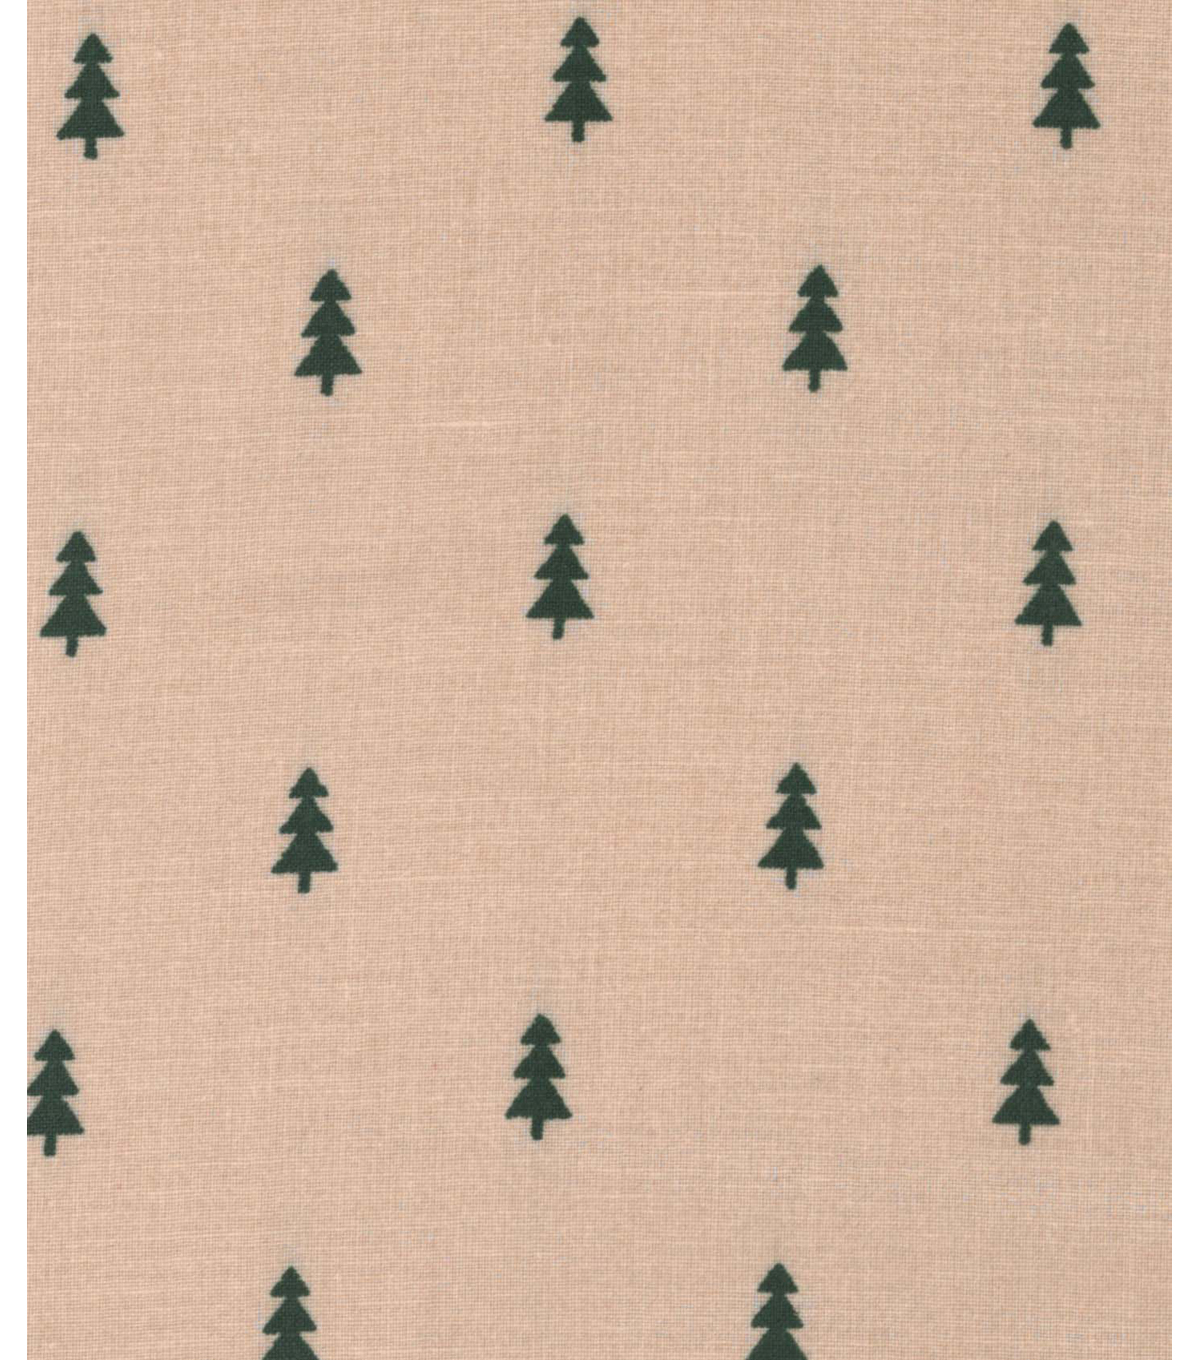 Holiday Showcase™ Christmas Cotton Fabric 43\u0027\u0027-Mini Christmas Trees on Beige